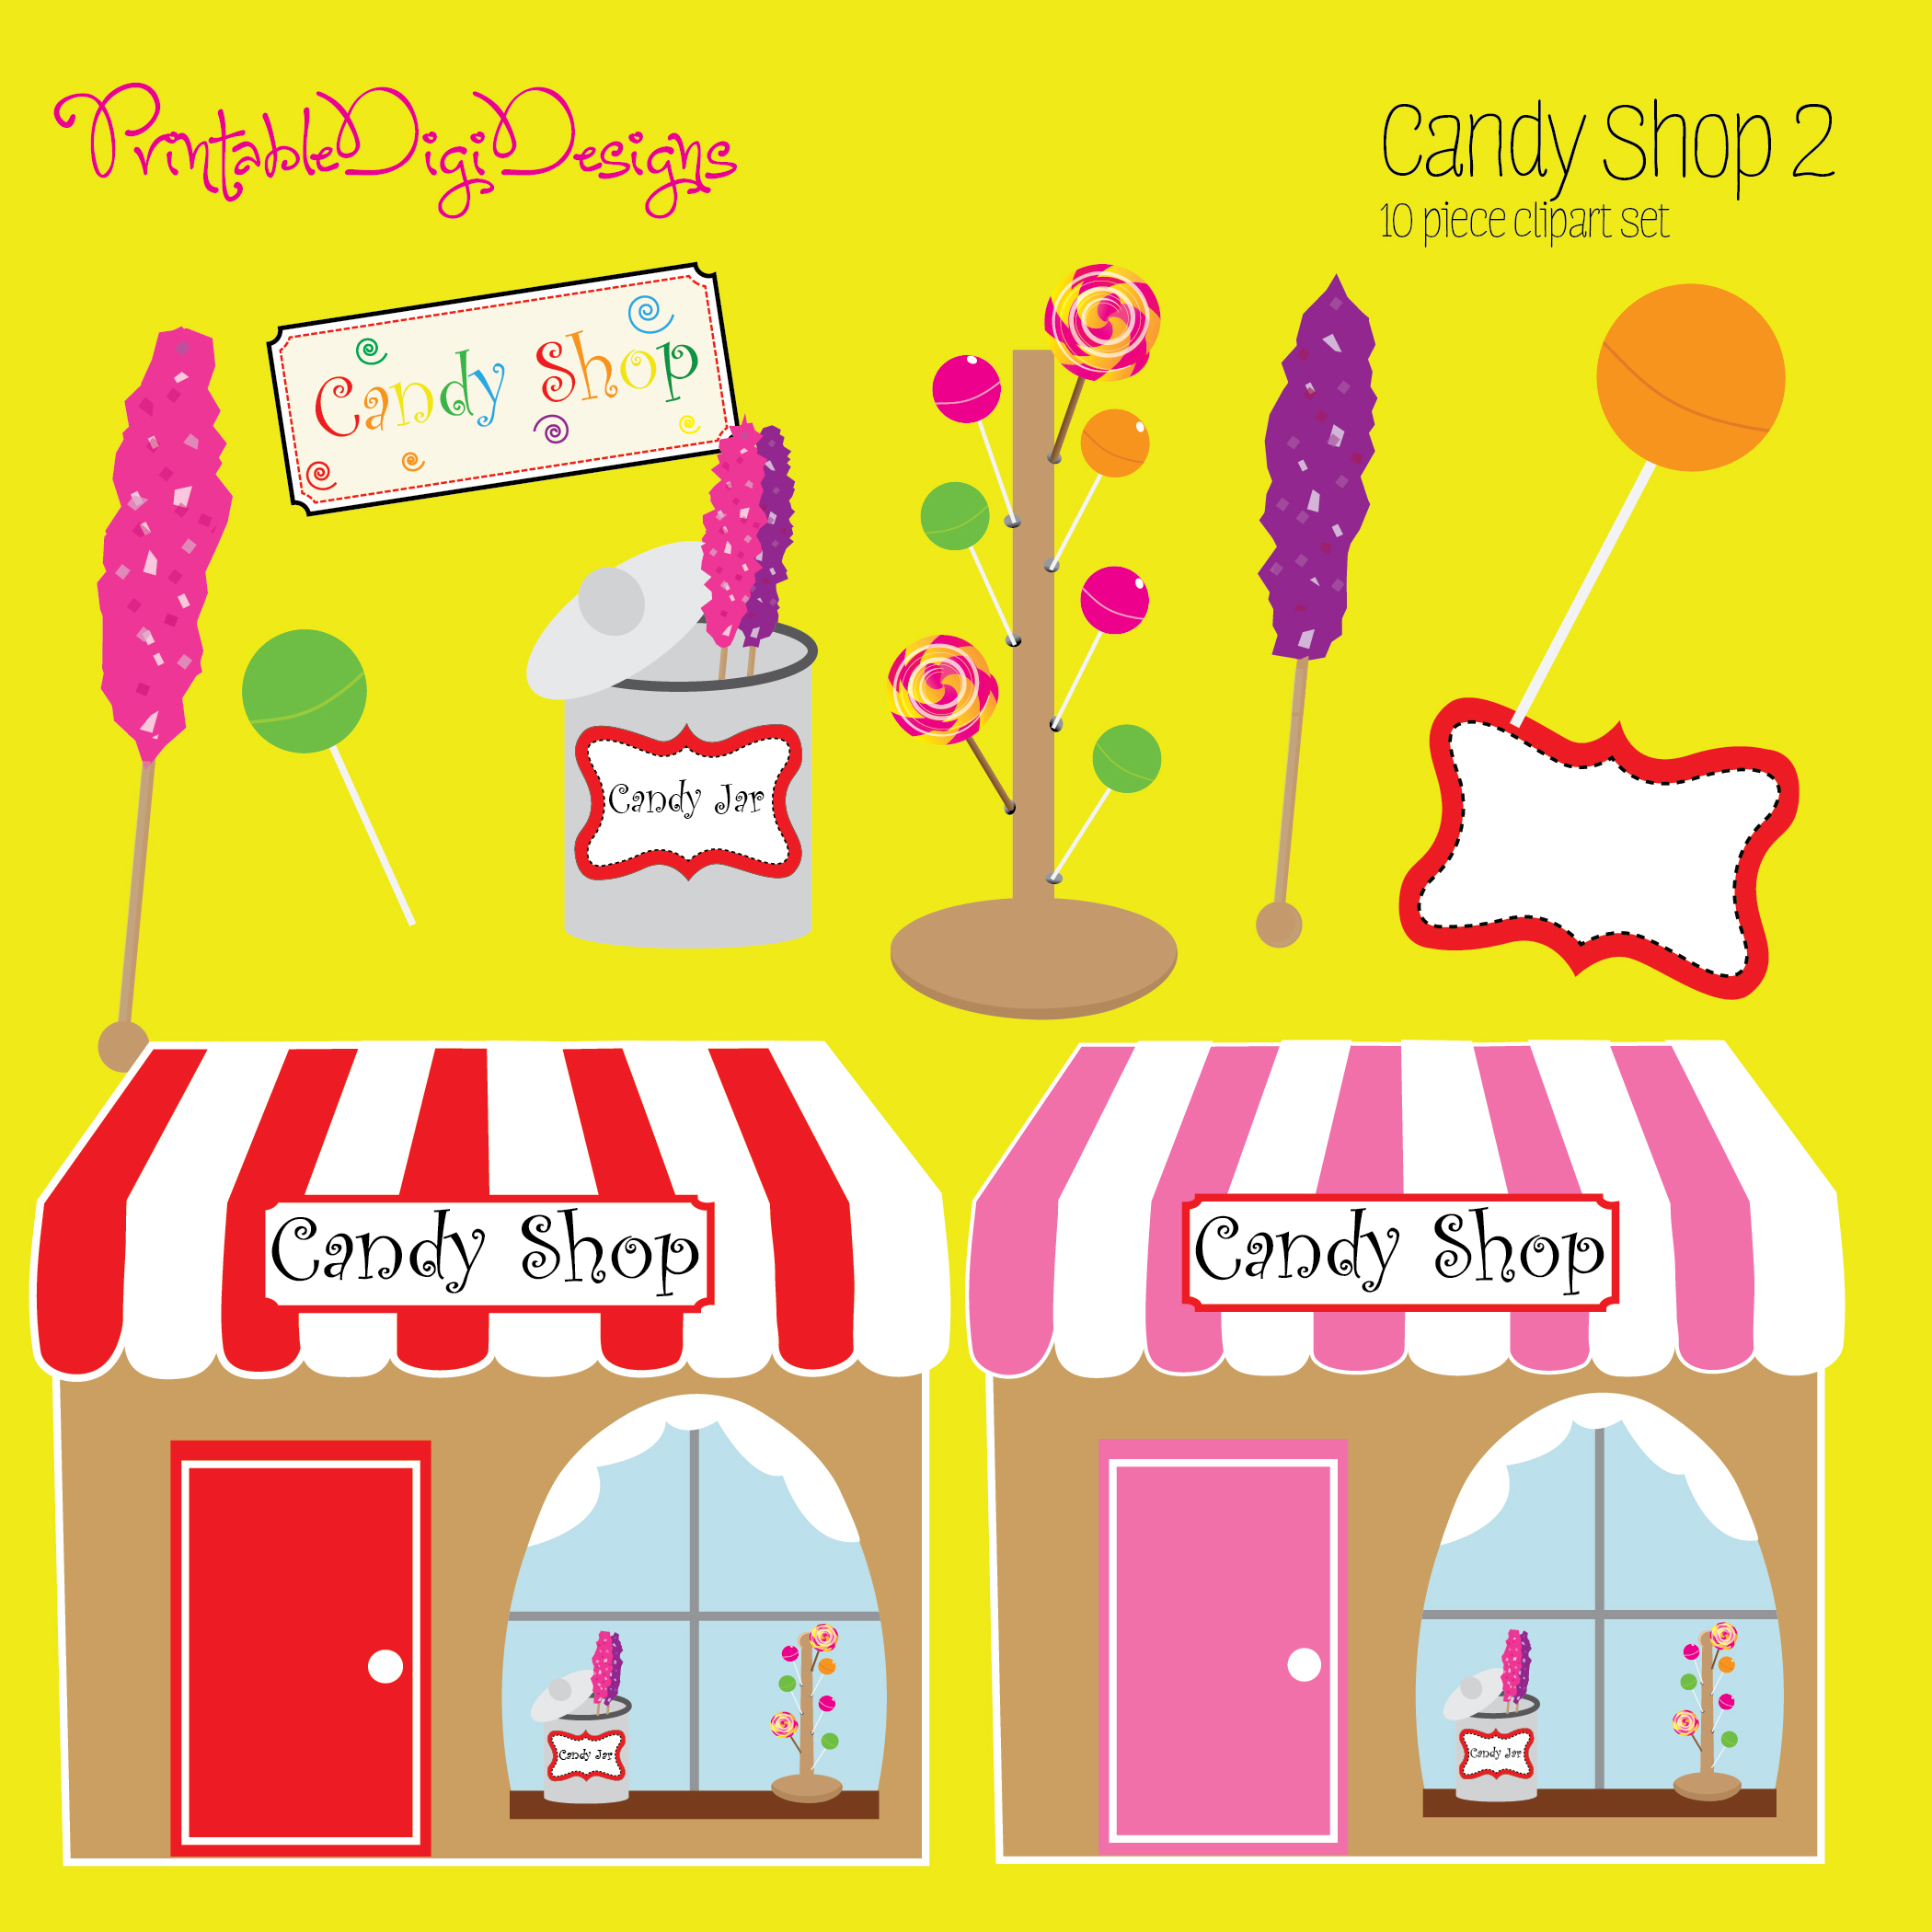 Candy Shop 2 Clipart Graphic Set   3 50 Sweet Candy Shop 2 Clipart